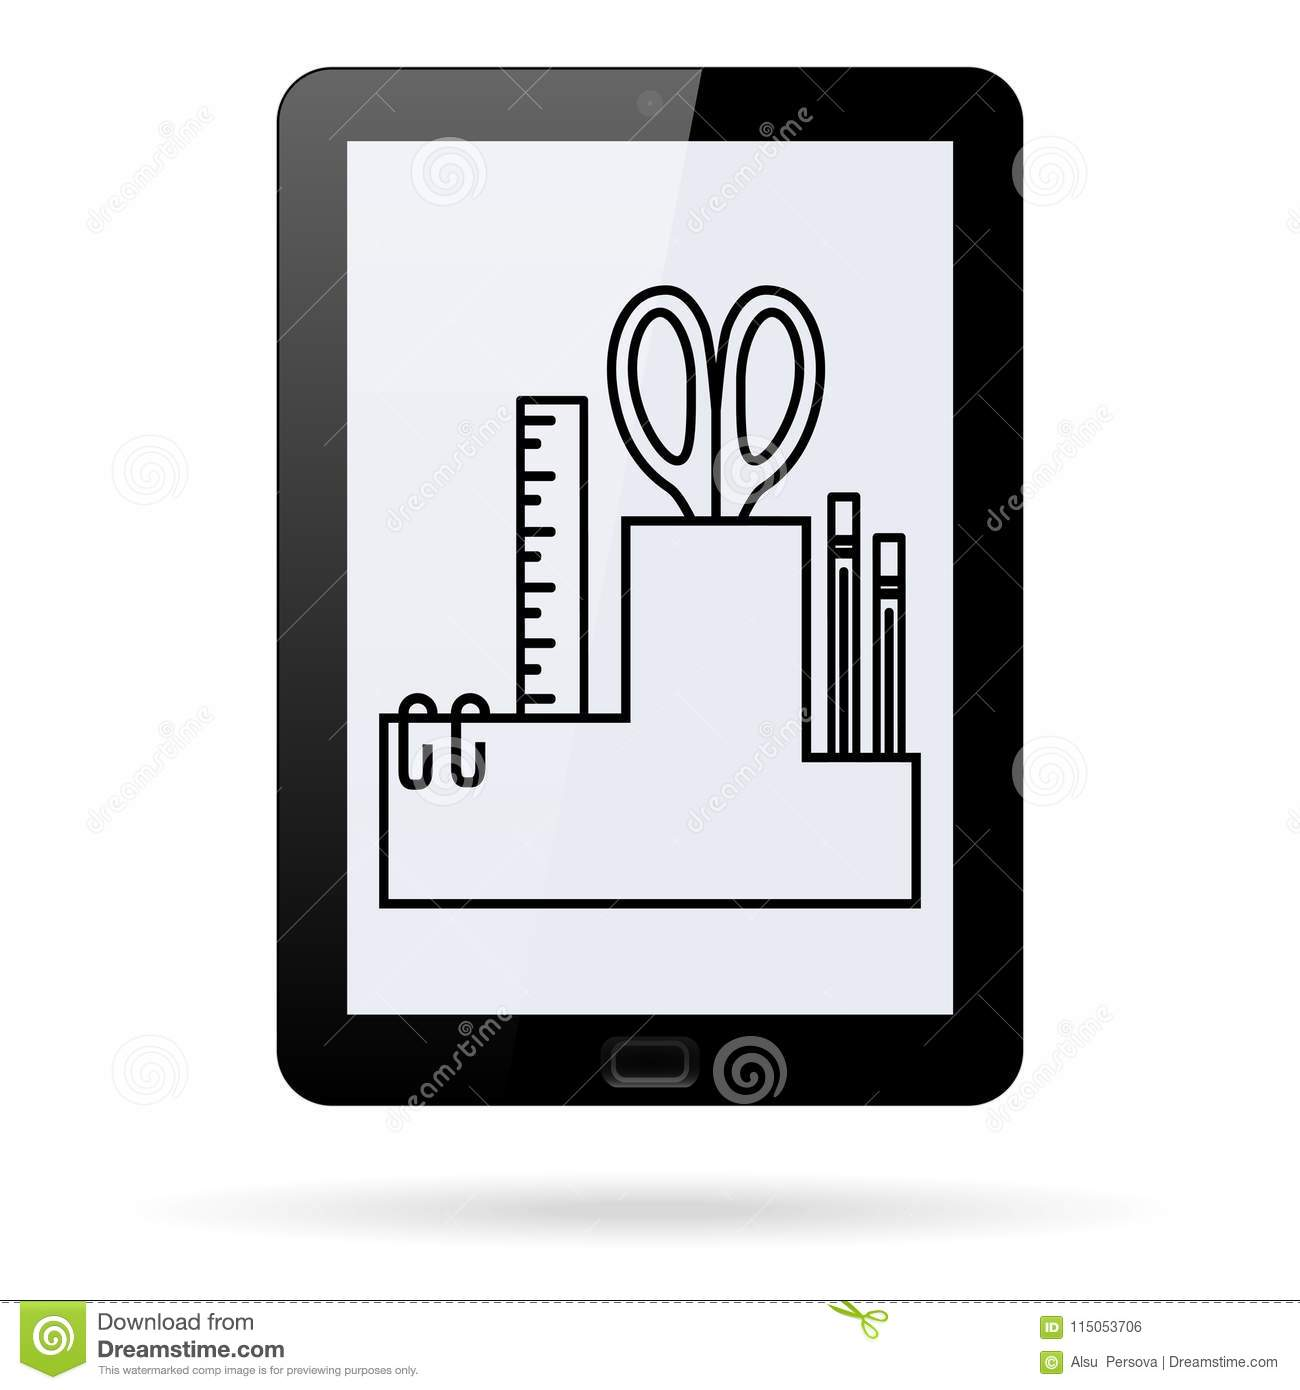 Desktop Organizer Line Icon For Stationery Tools On A Realistic Tablet